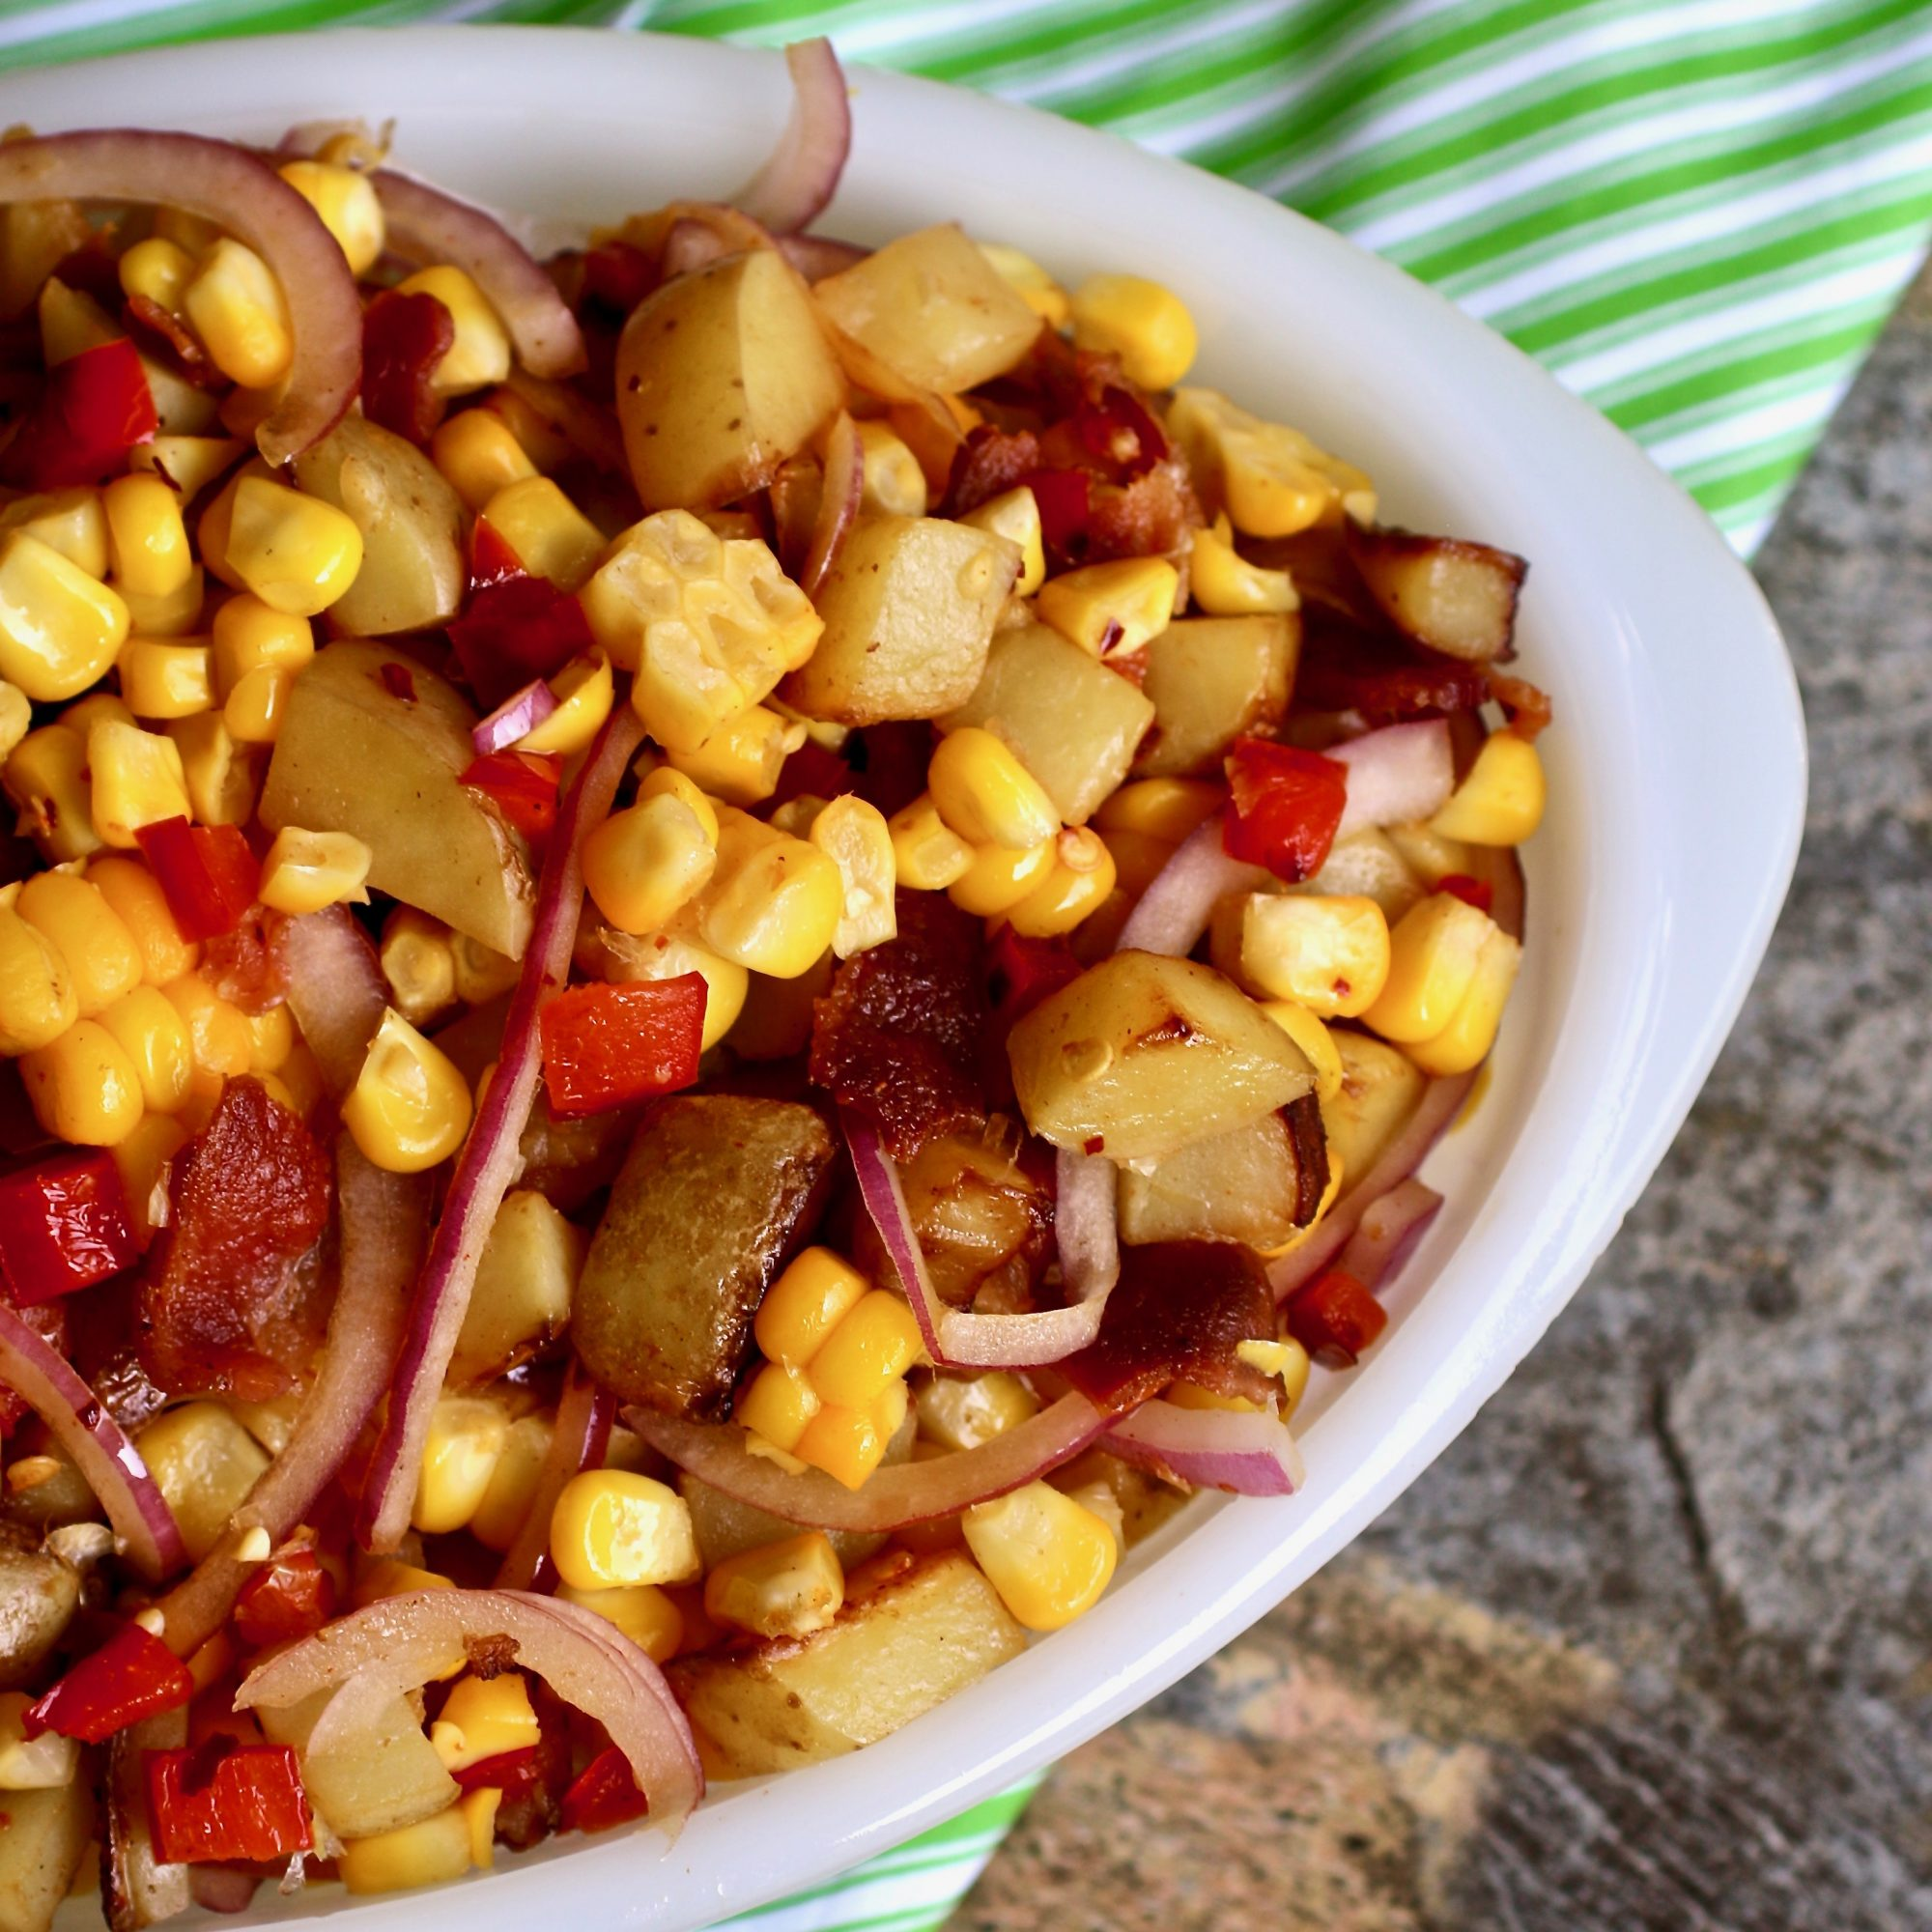 bowl of corn salad with bacon, red onion, potatoes, and peppers